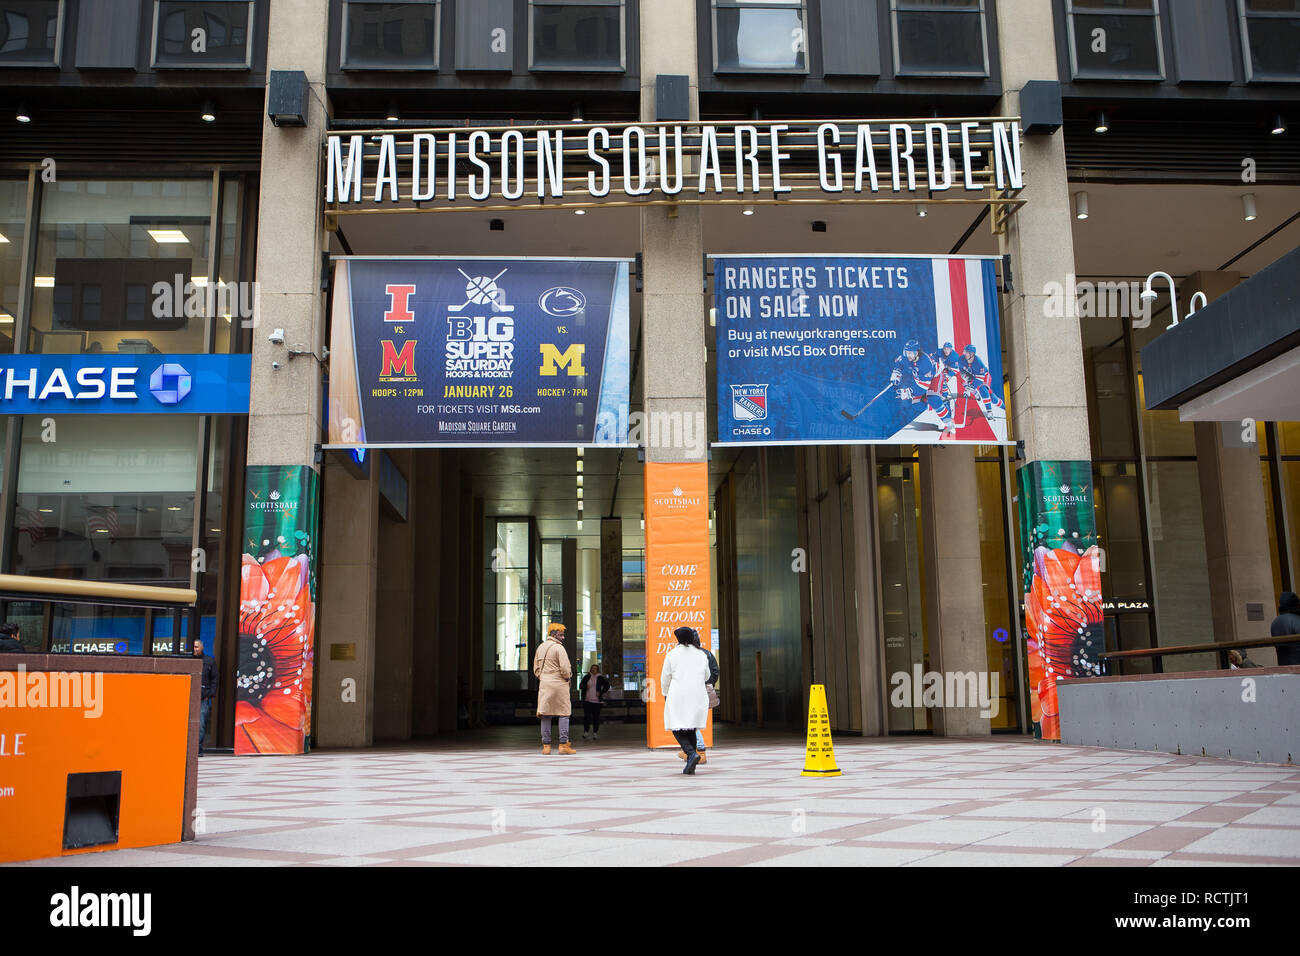 General View Gv Of Madison Square Garden Entrance In New York City